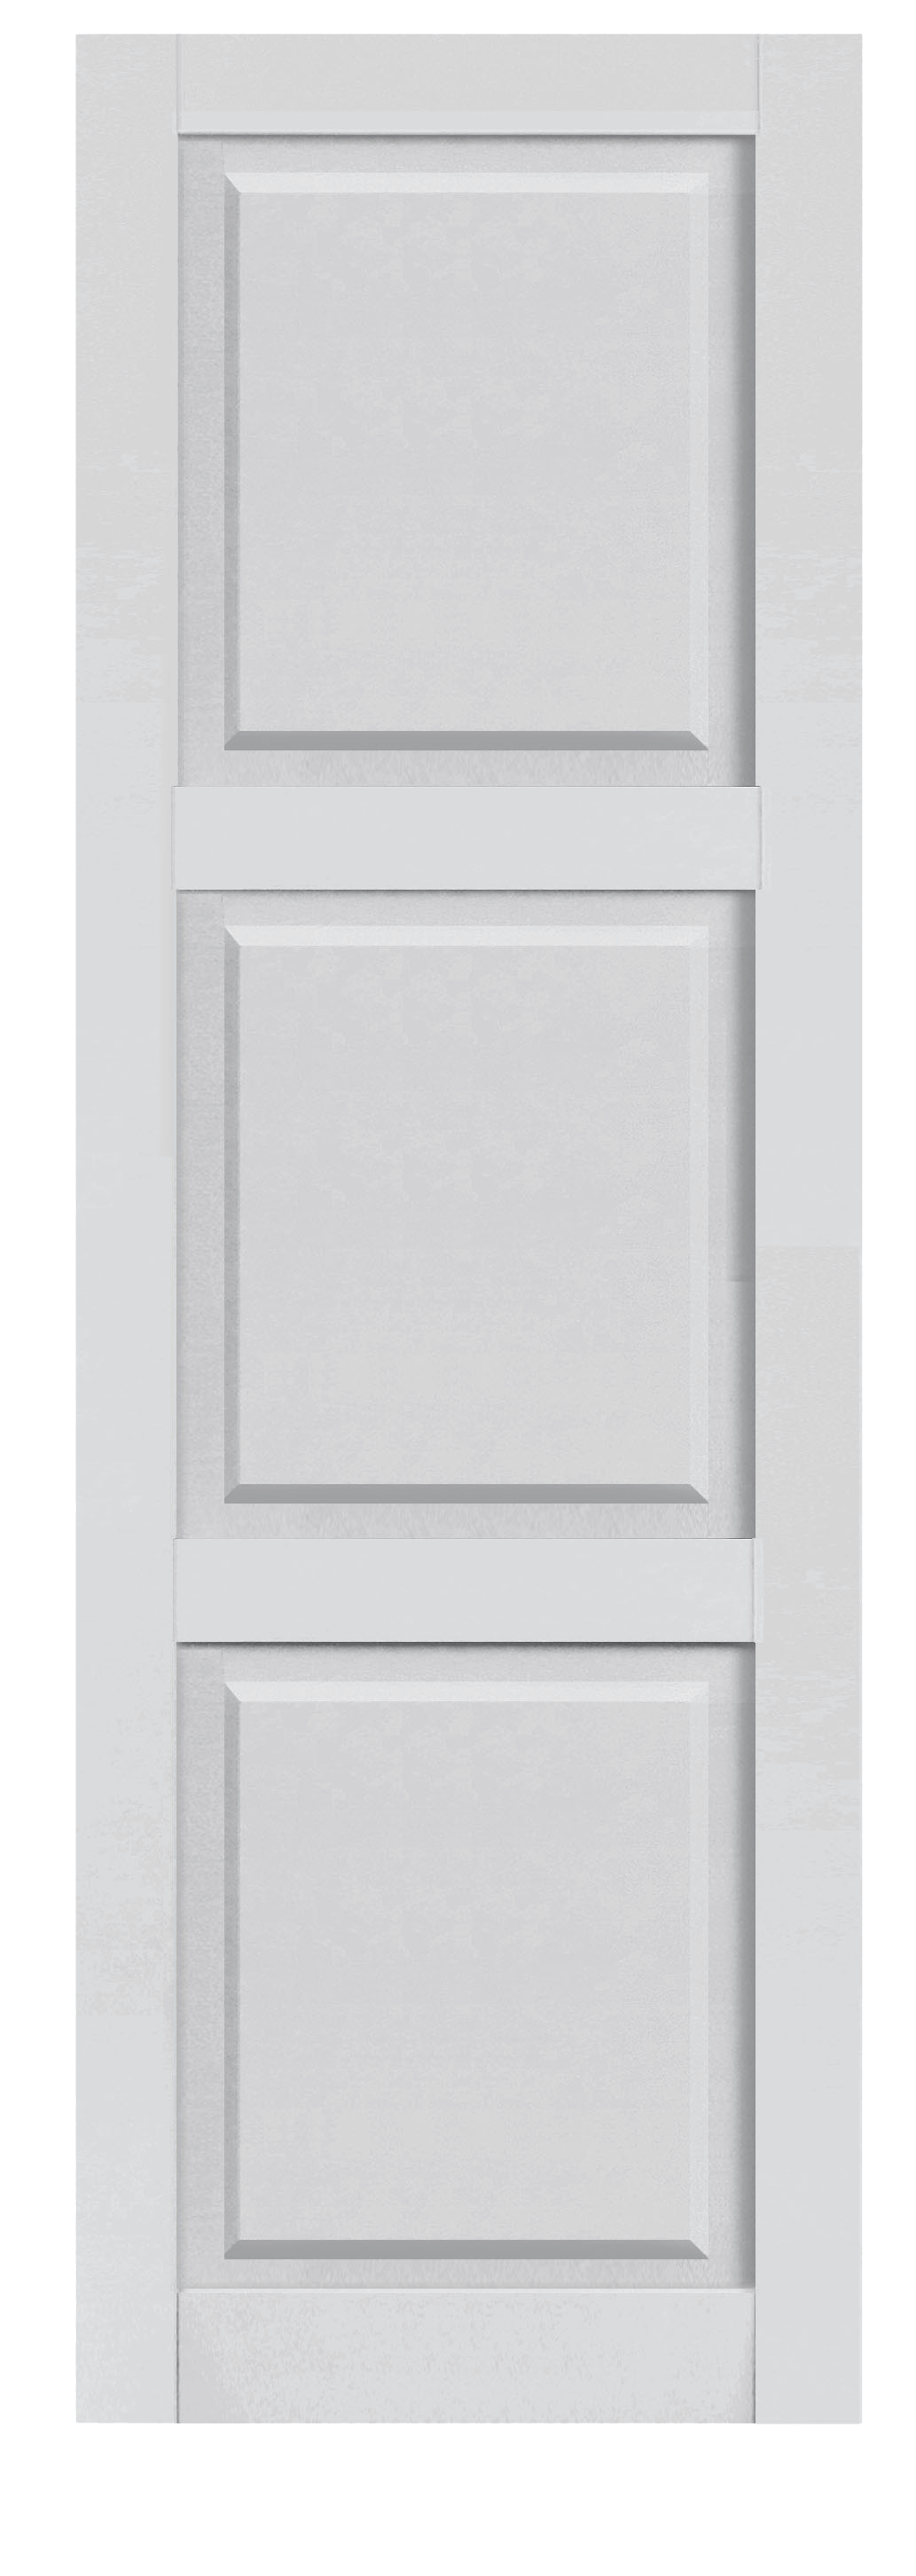 Composite Paneled 3 Equal Sections